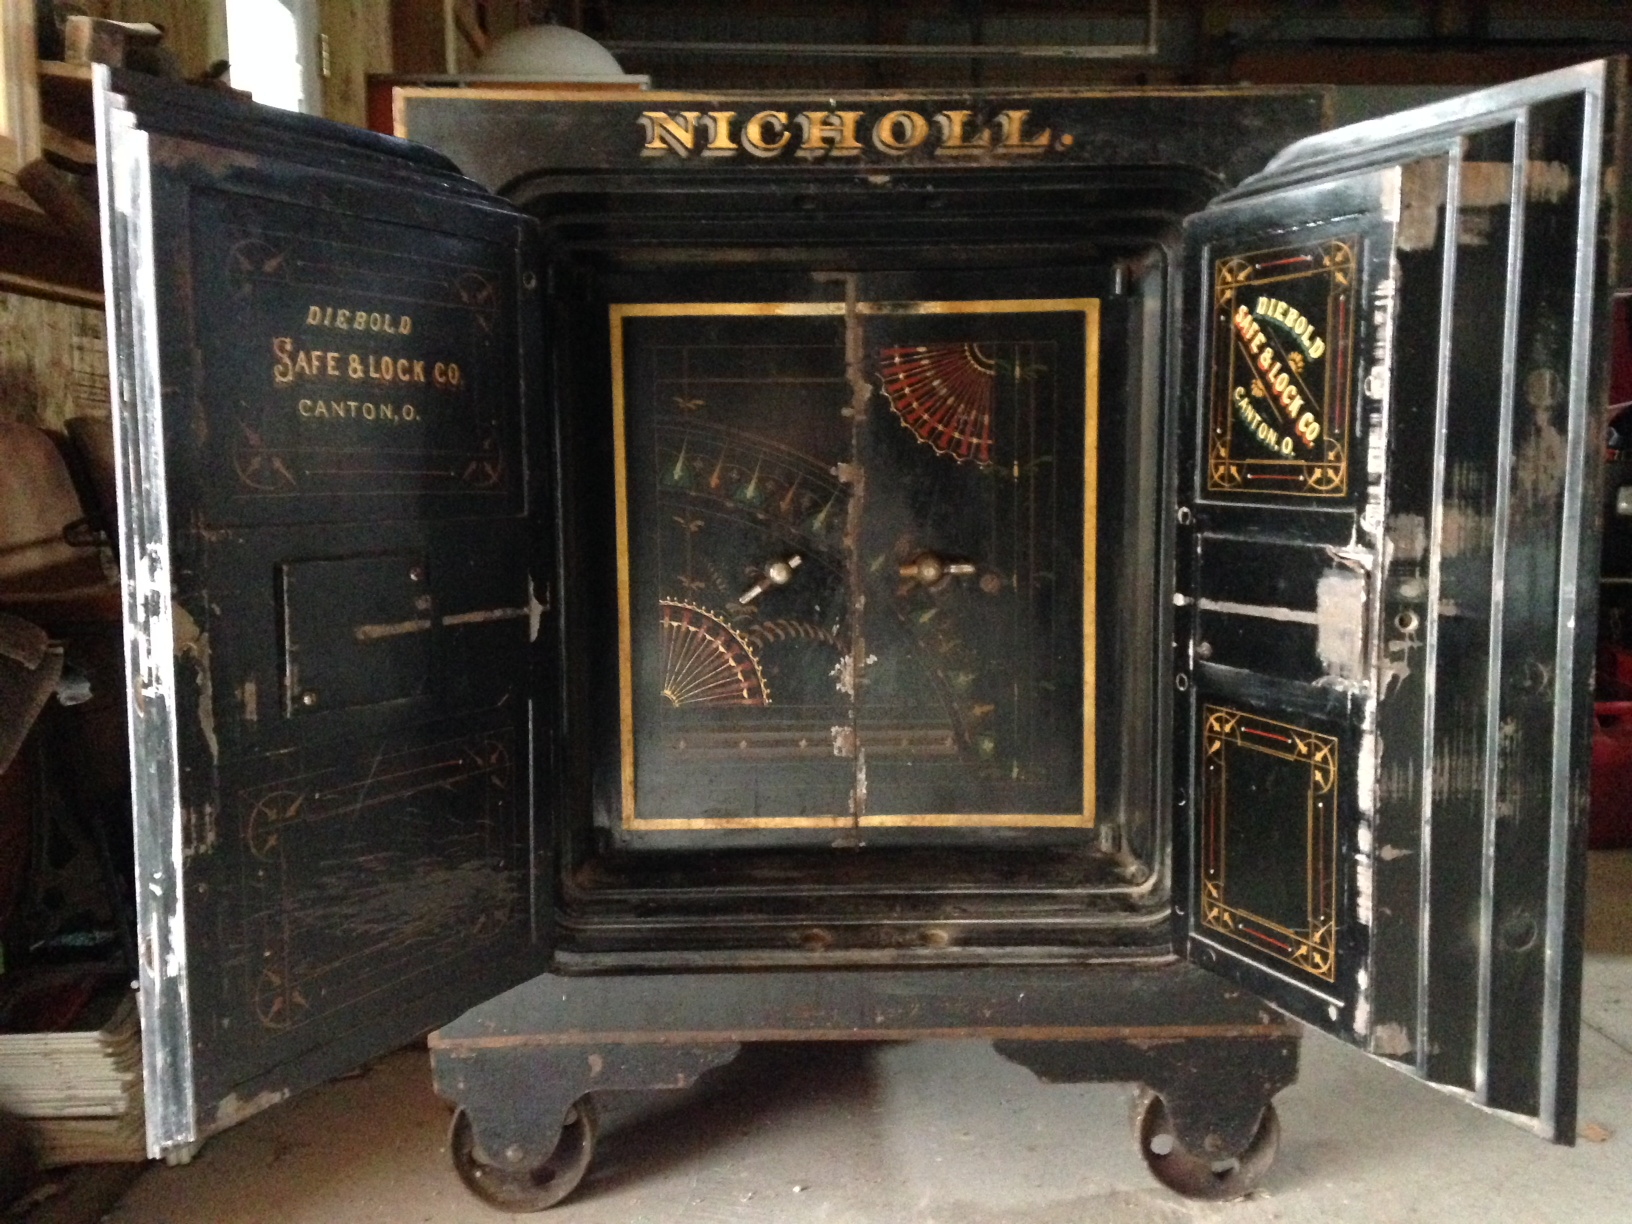 Nicholl Safe' Now Safe | The New Indian Ridge Museum